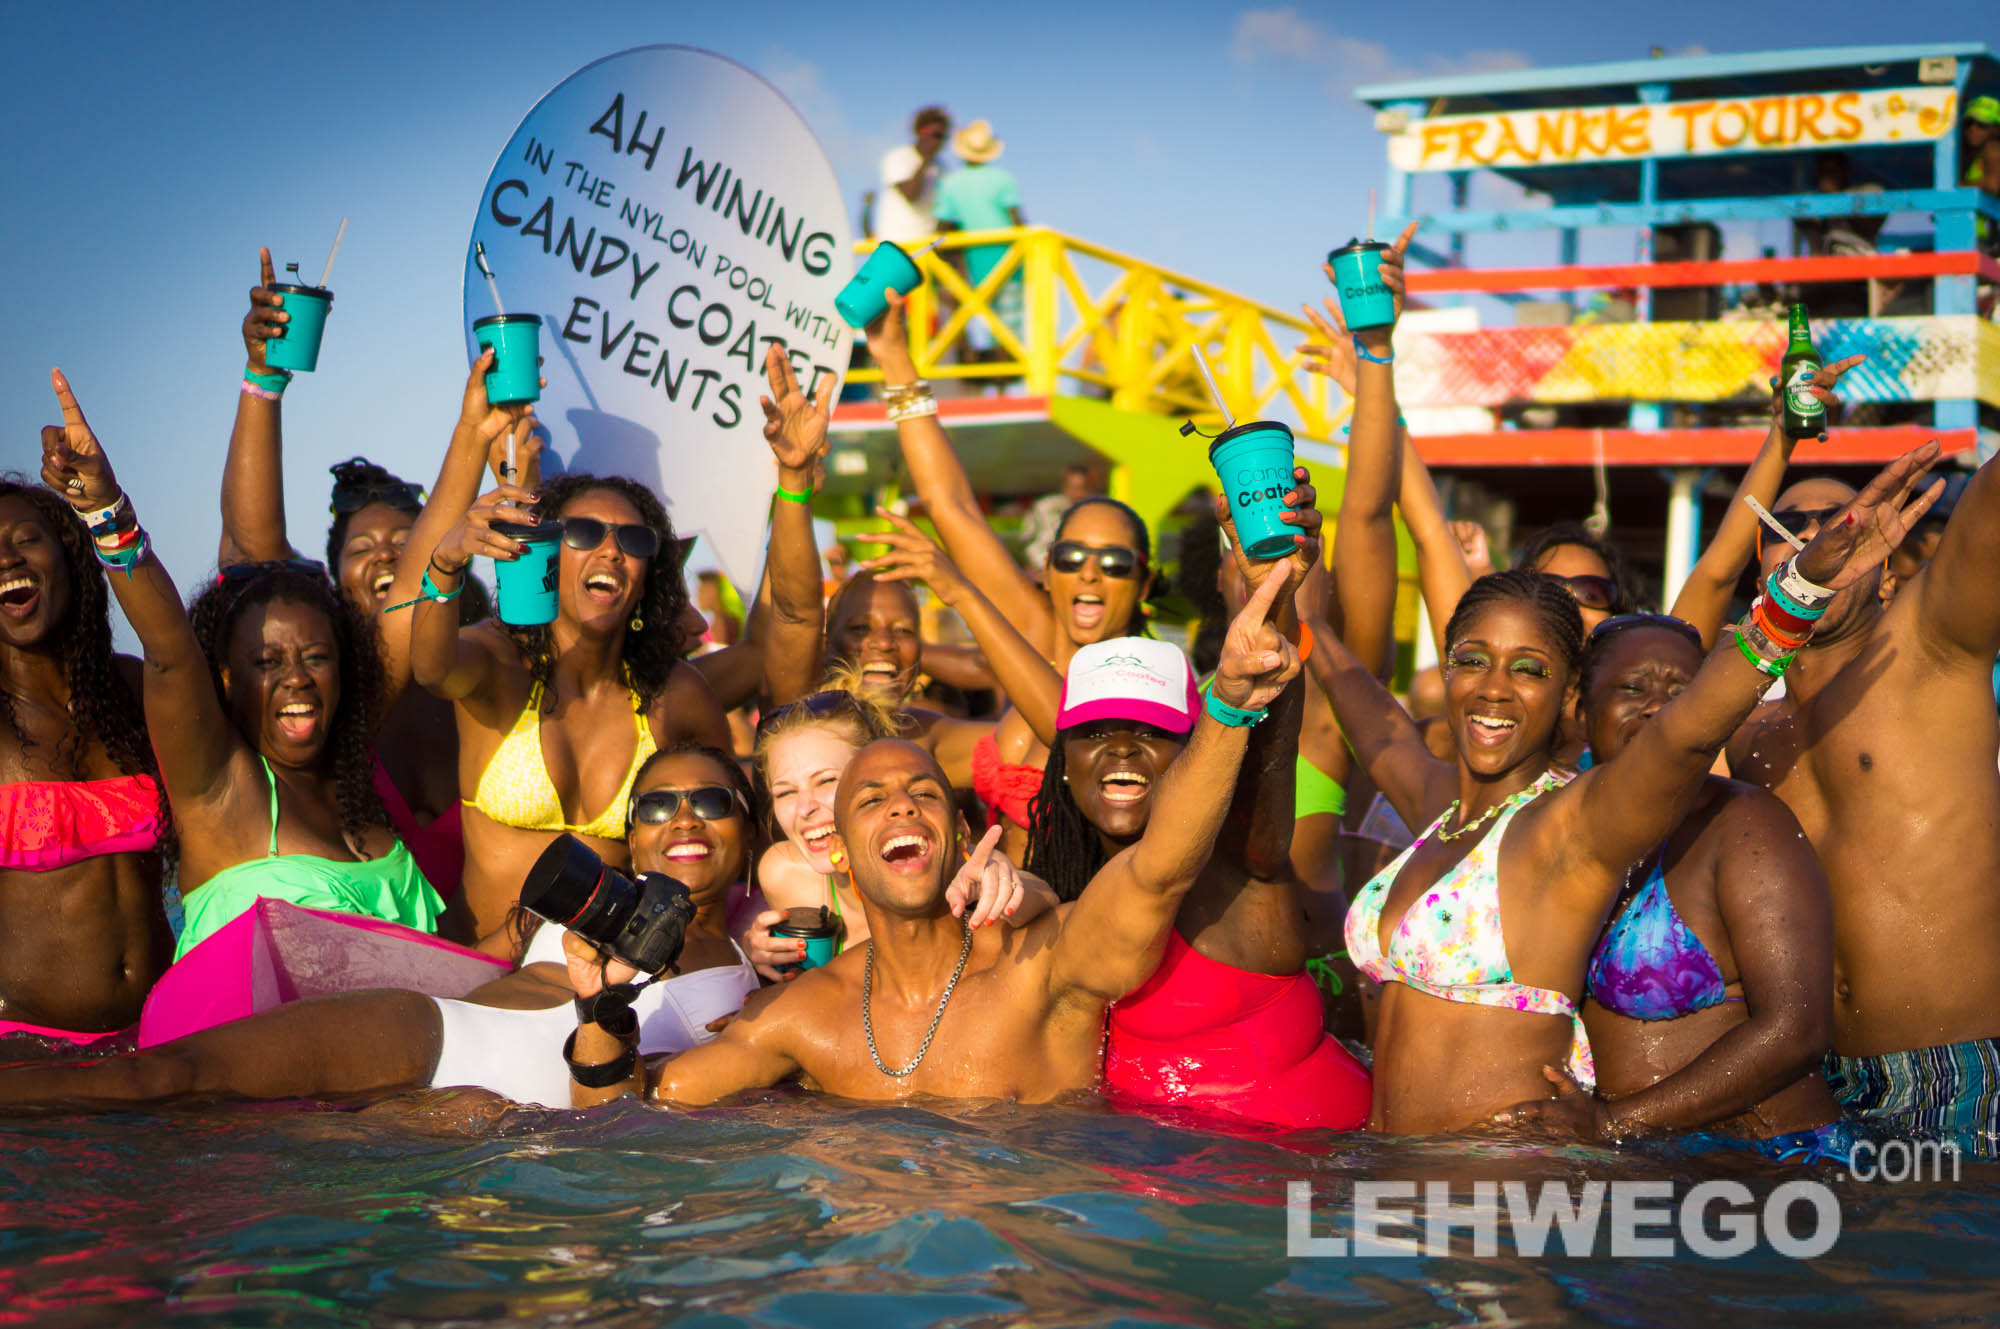 Candy Coated's Wine Down Cruise, Trinidad Carnival 2014 review